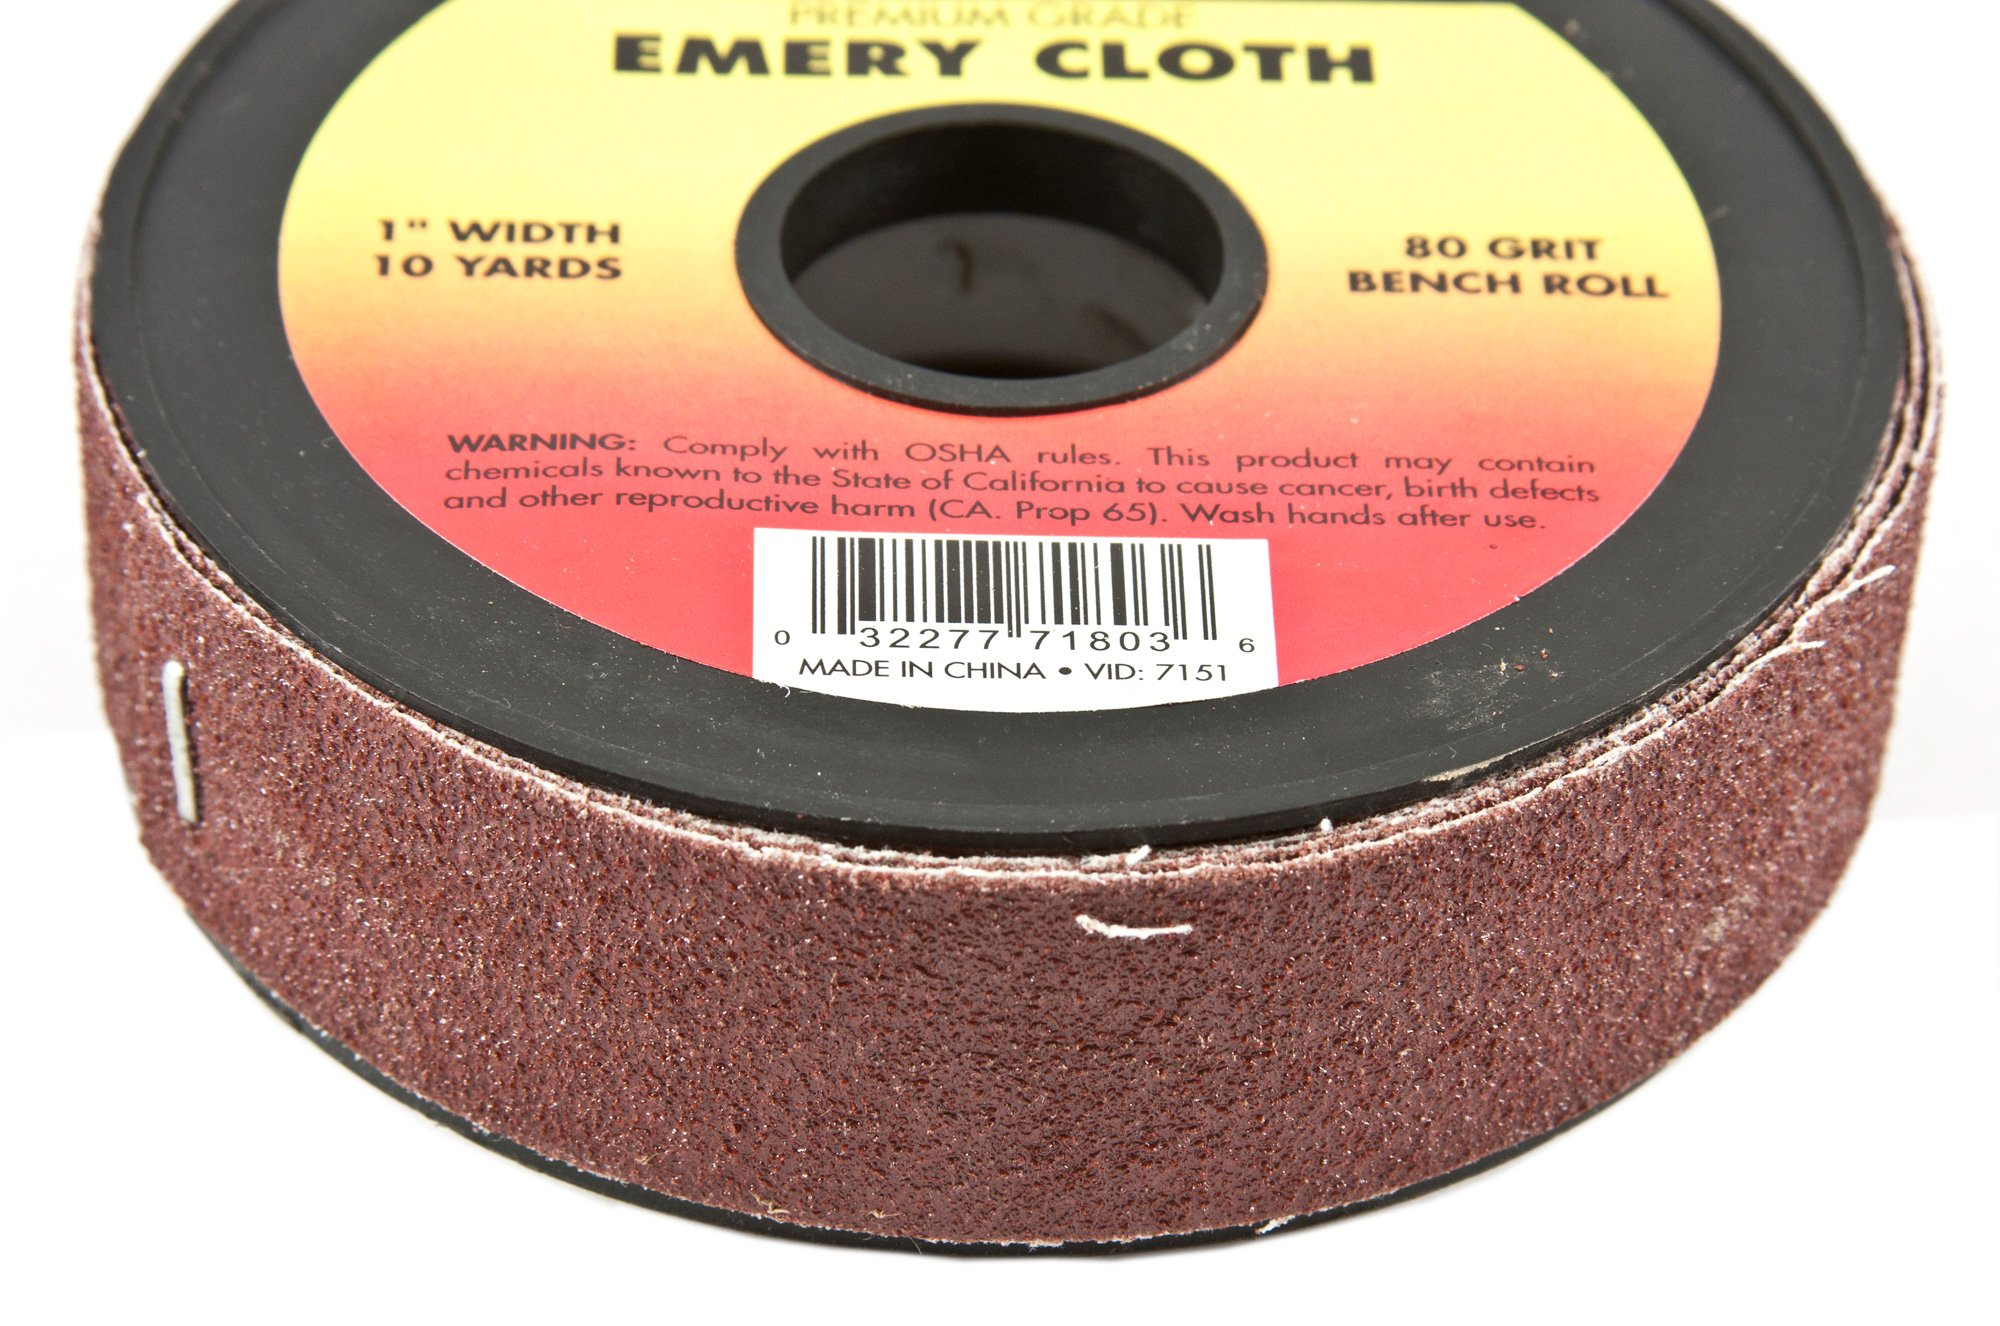 Forney 71803 Emery Cloth, 80-Grit, 1-Inch-by-10-Yard Bench Roll by Forney (Image #4)